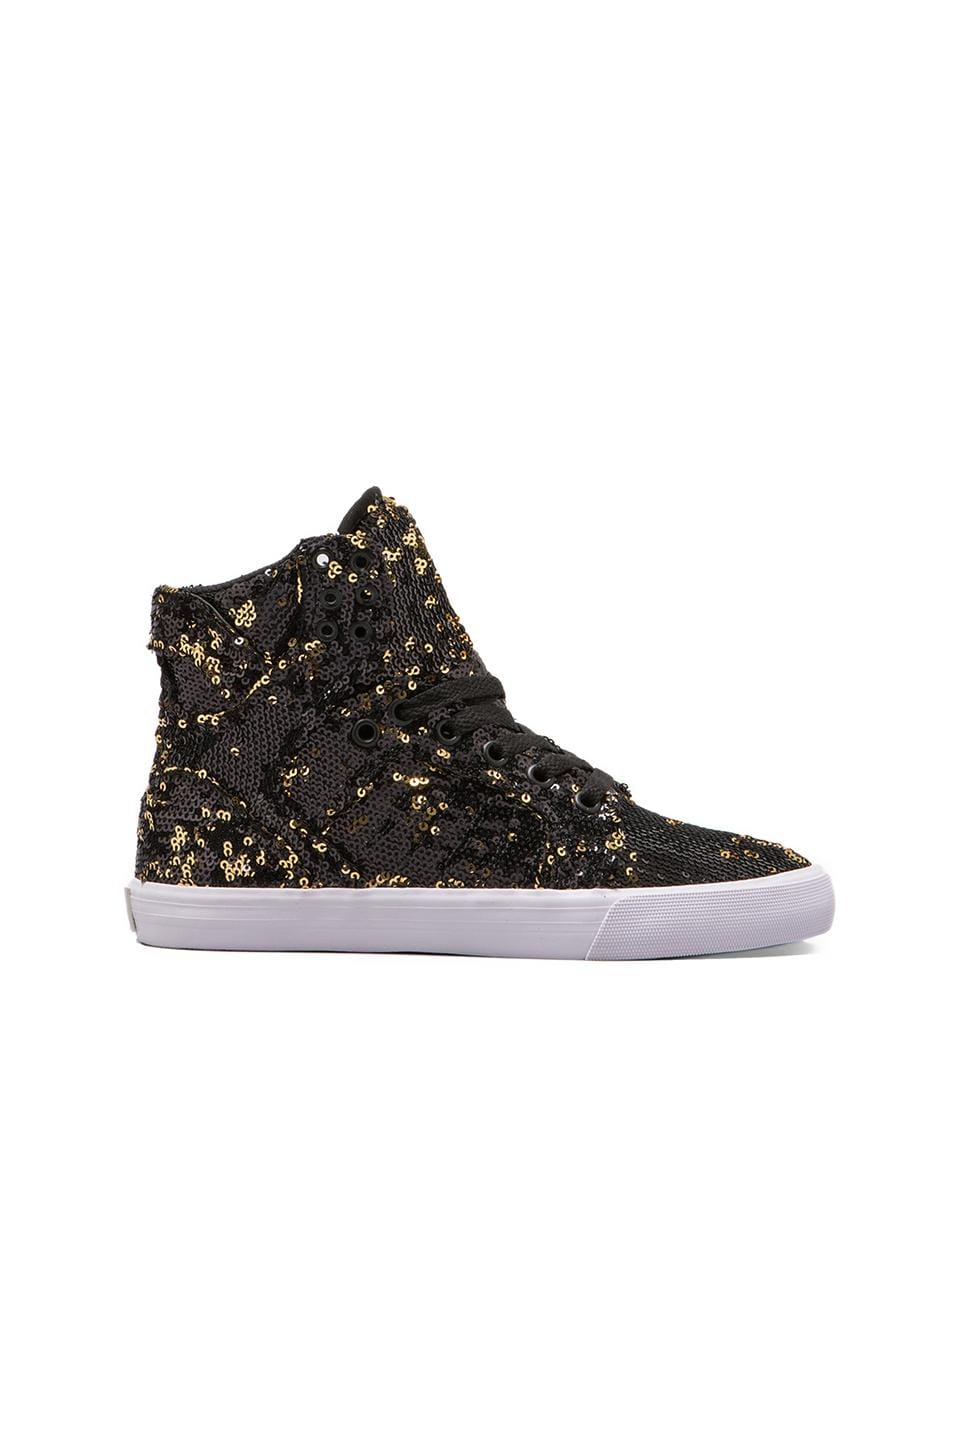 Supra Skytop Sneaker in Black/Gold Sequins